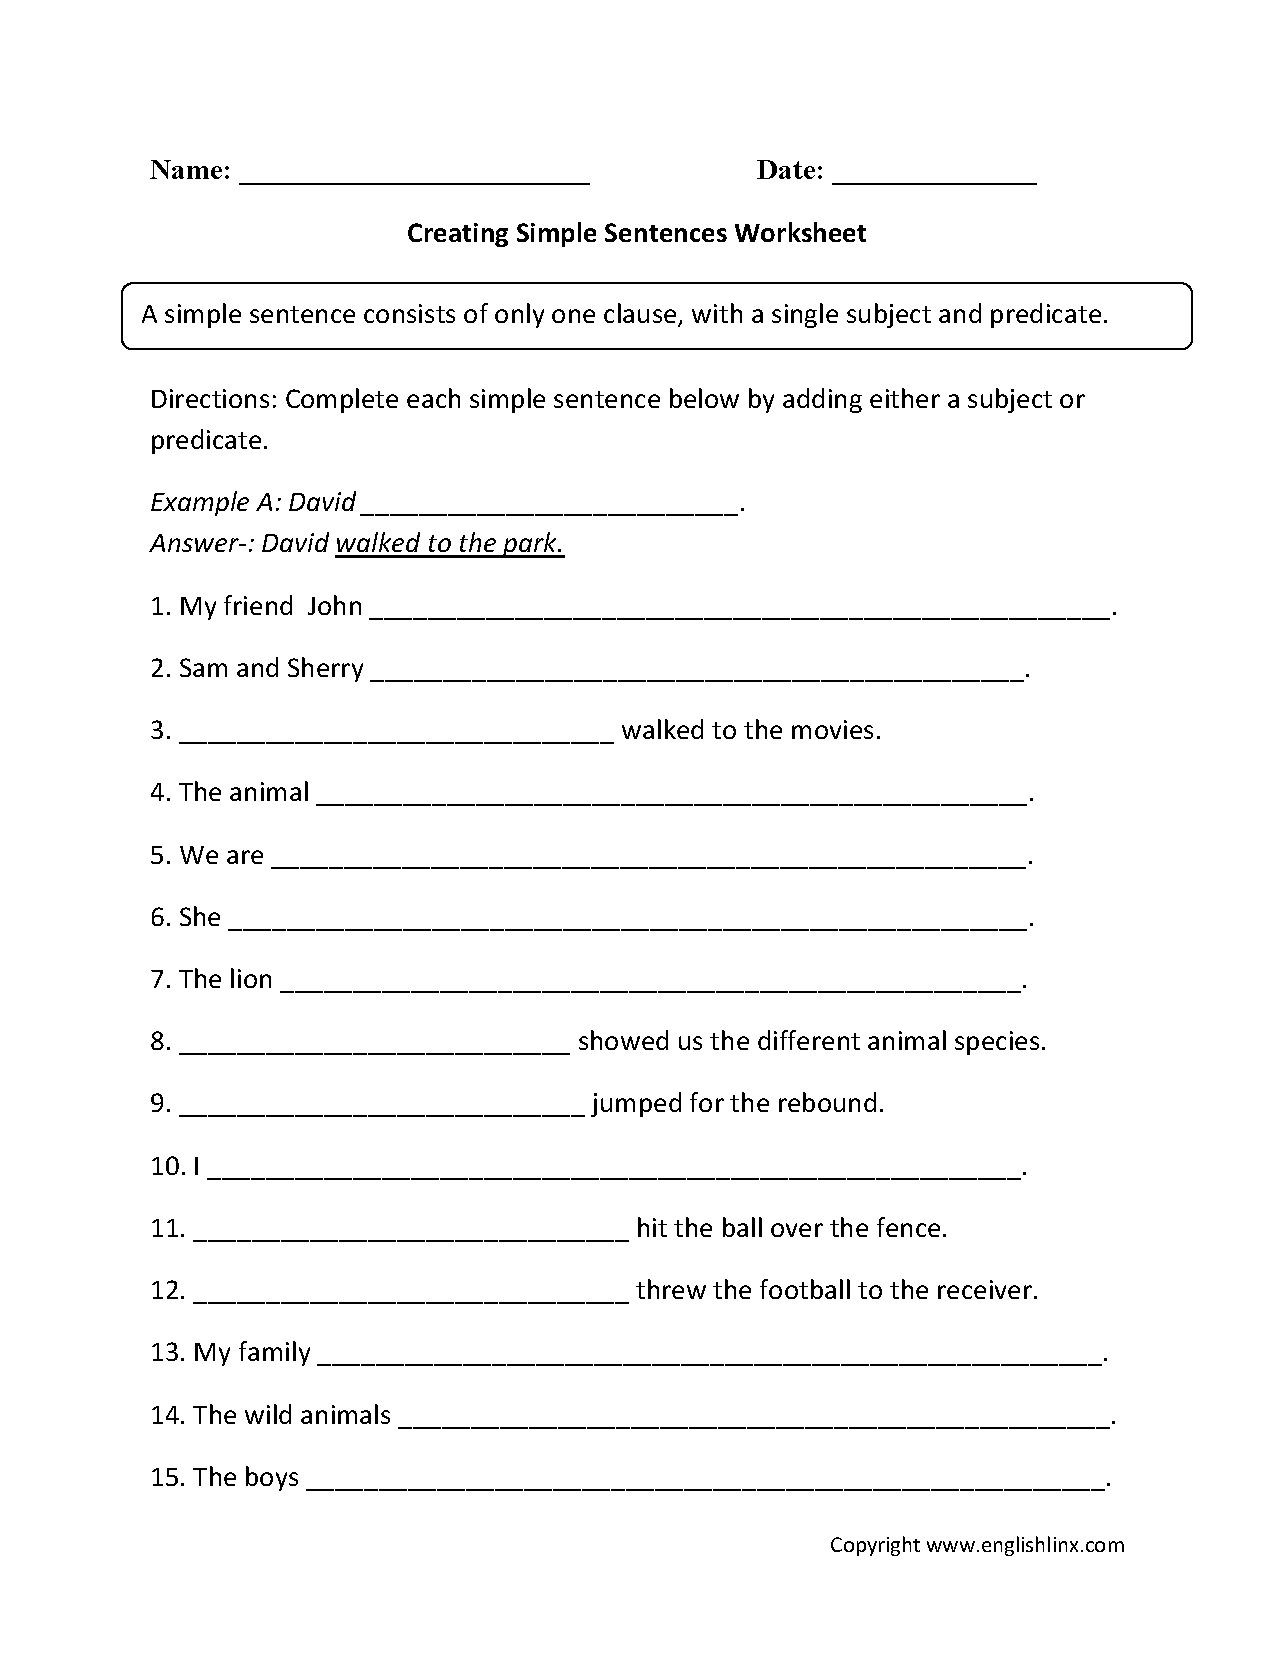 Creating Simple Sentence Worksheet